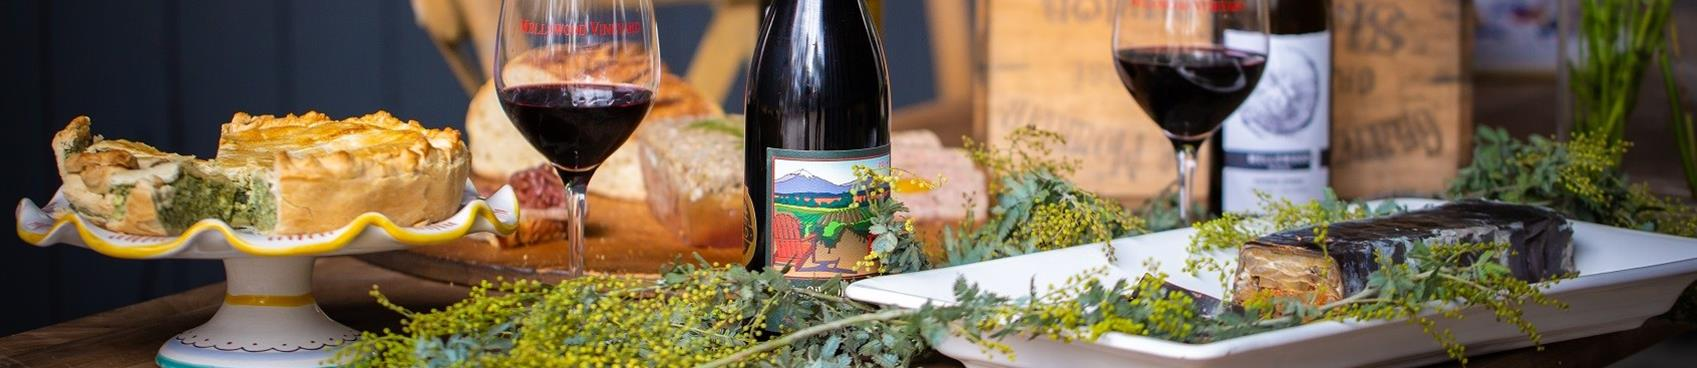 Purchase Tickets to December Wine Club Release Open House at Mellowood Vineyard on CellarPass